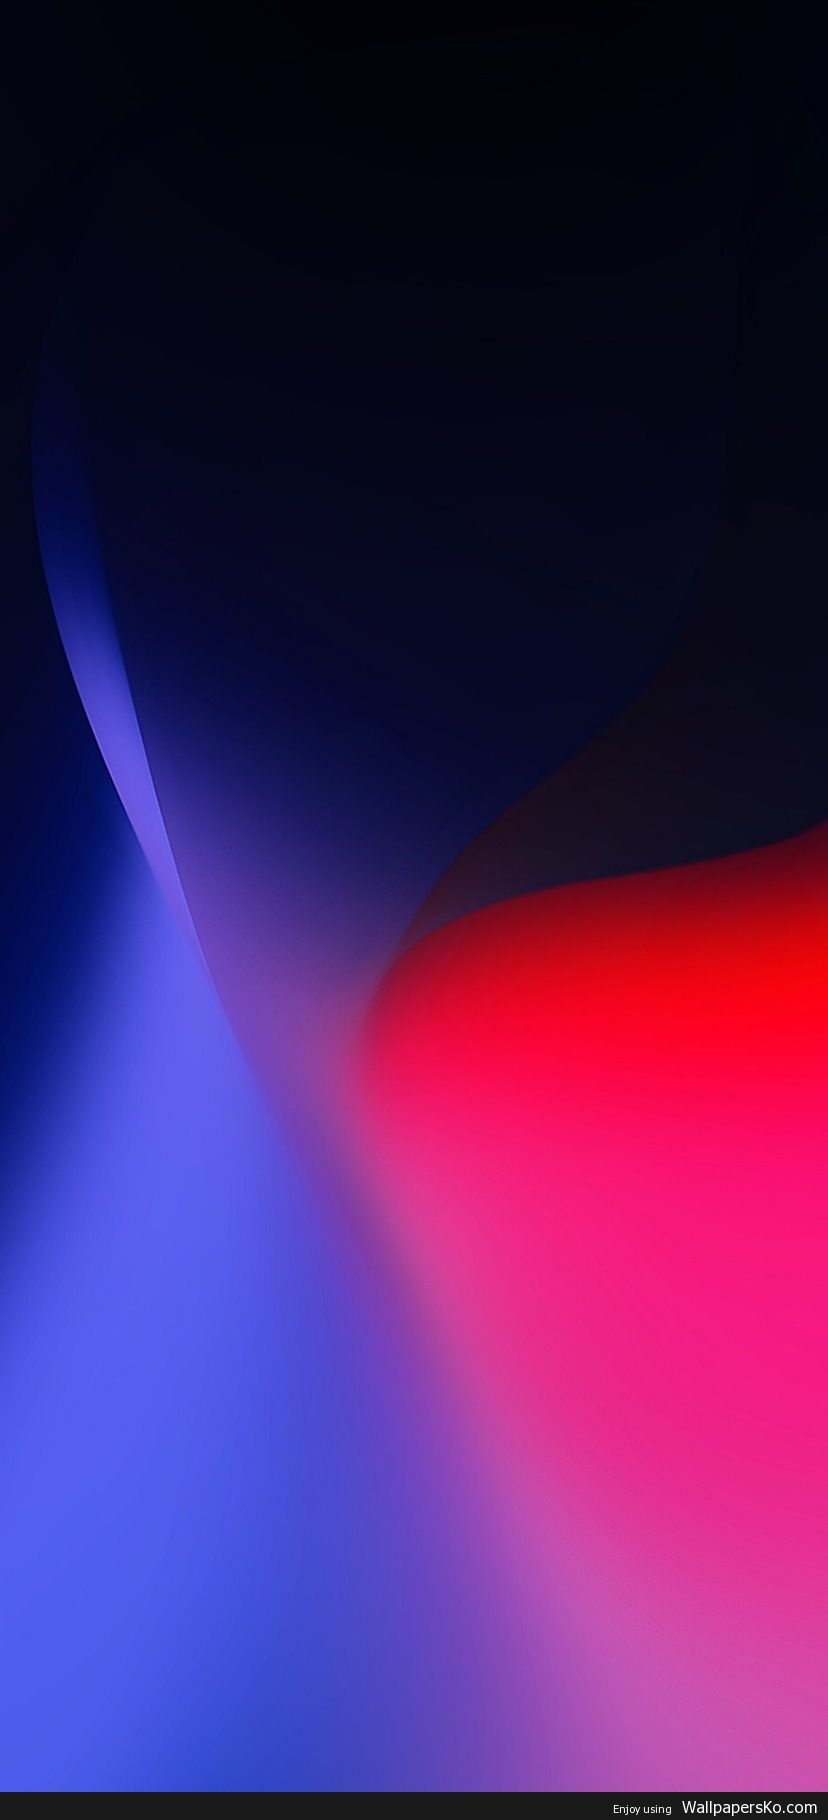 Wallpapers iPhone XR Free Download